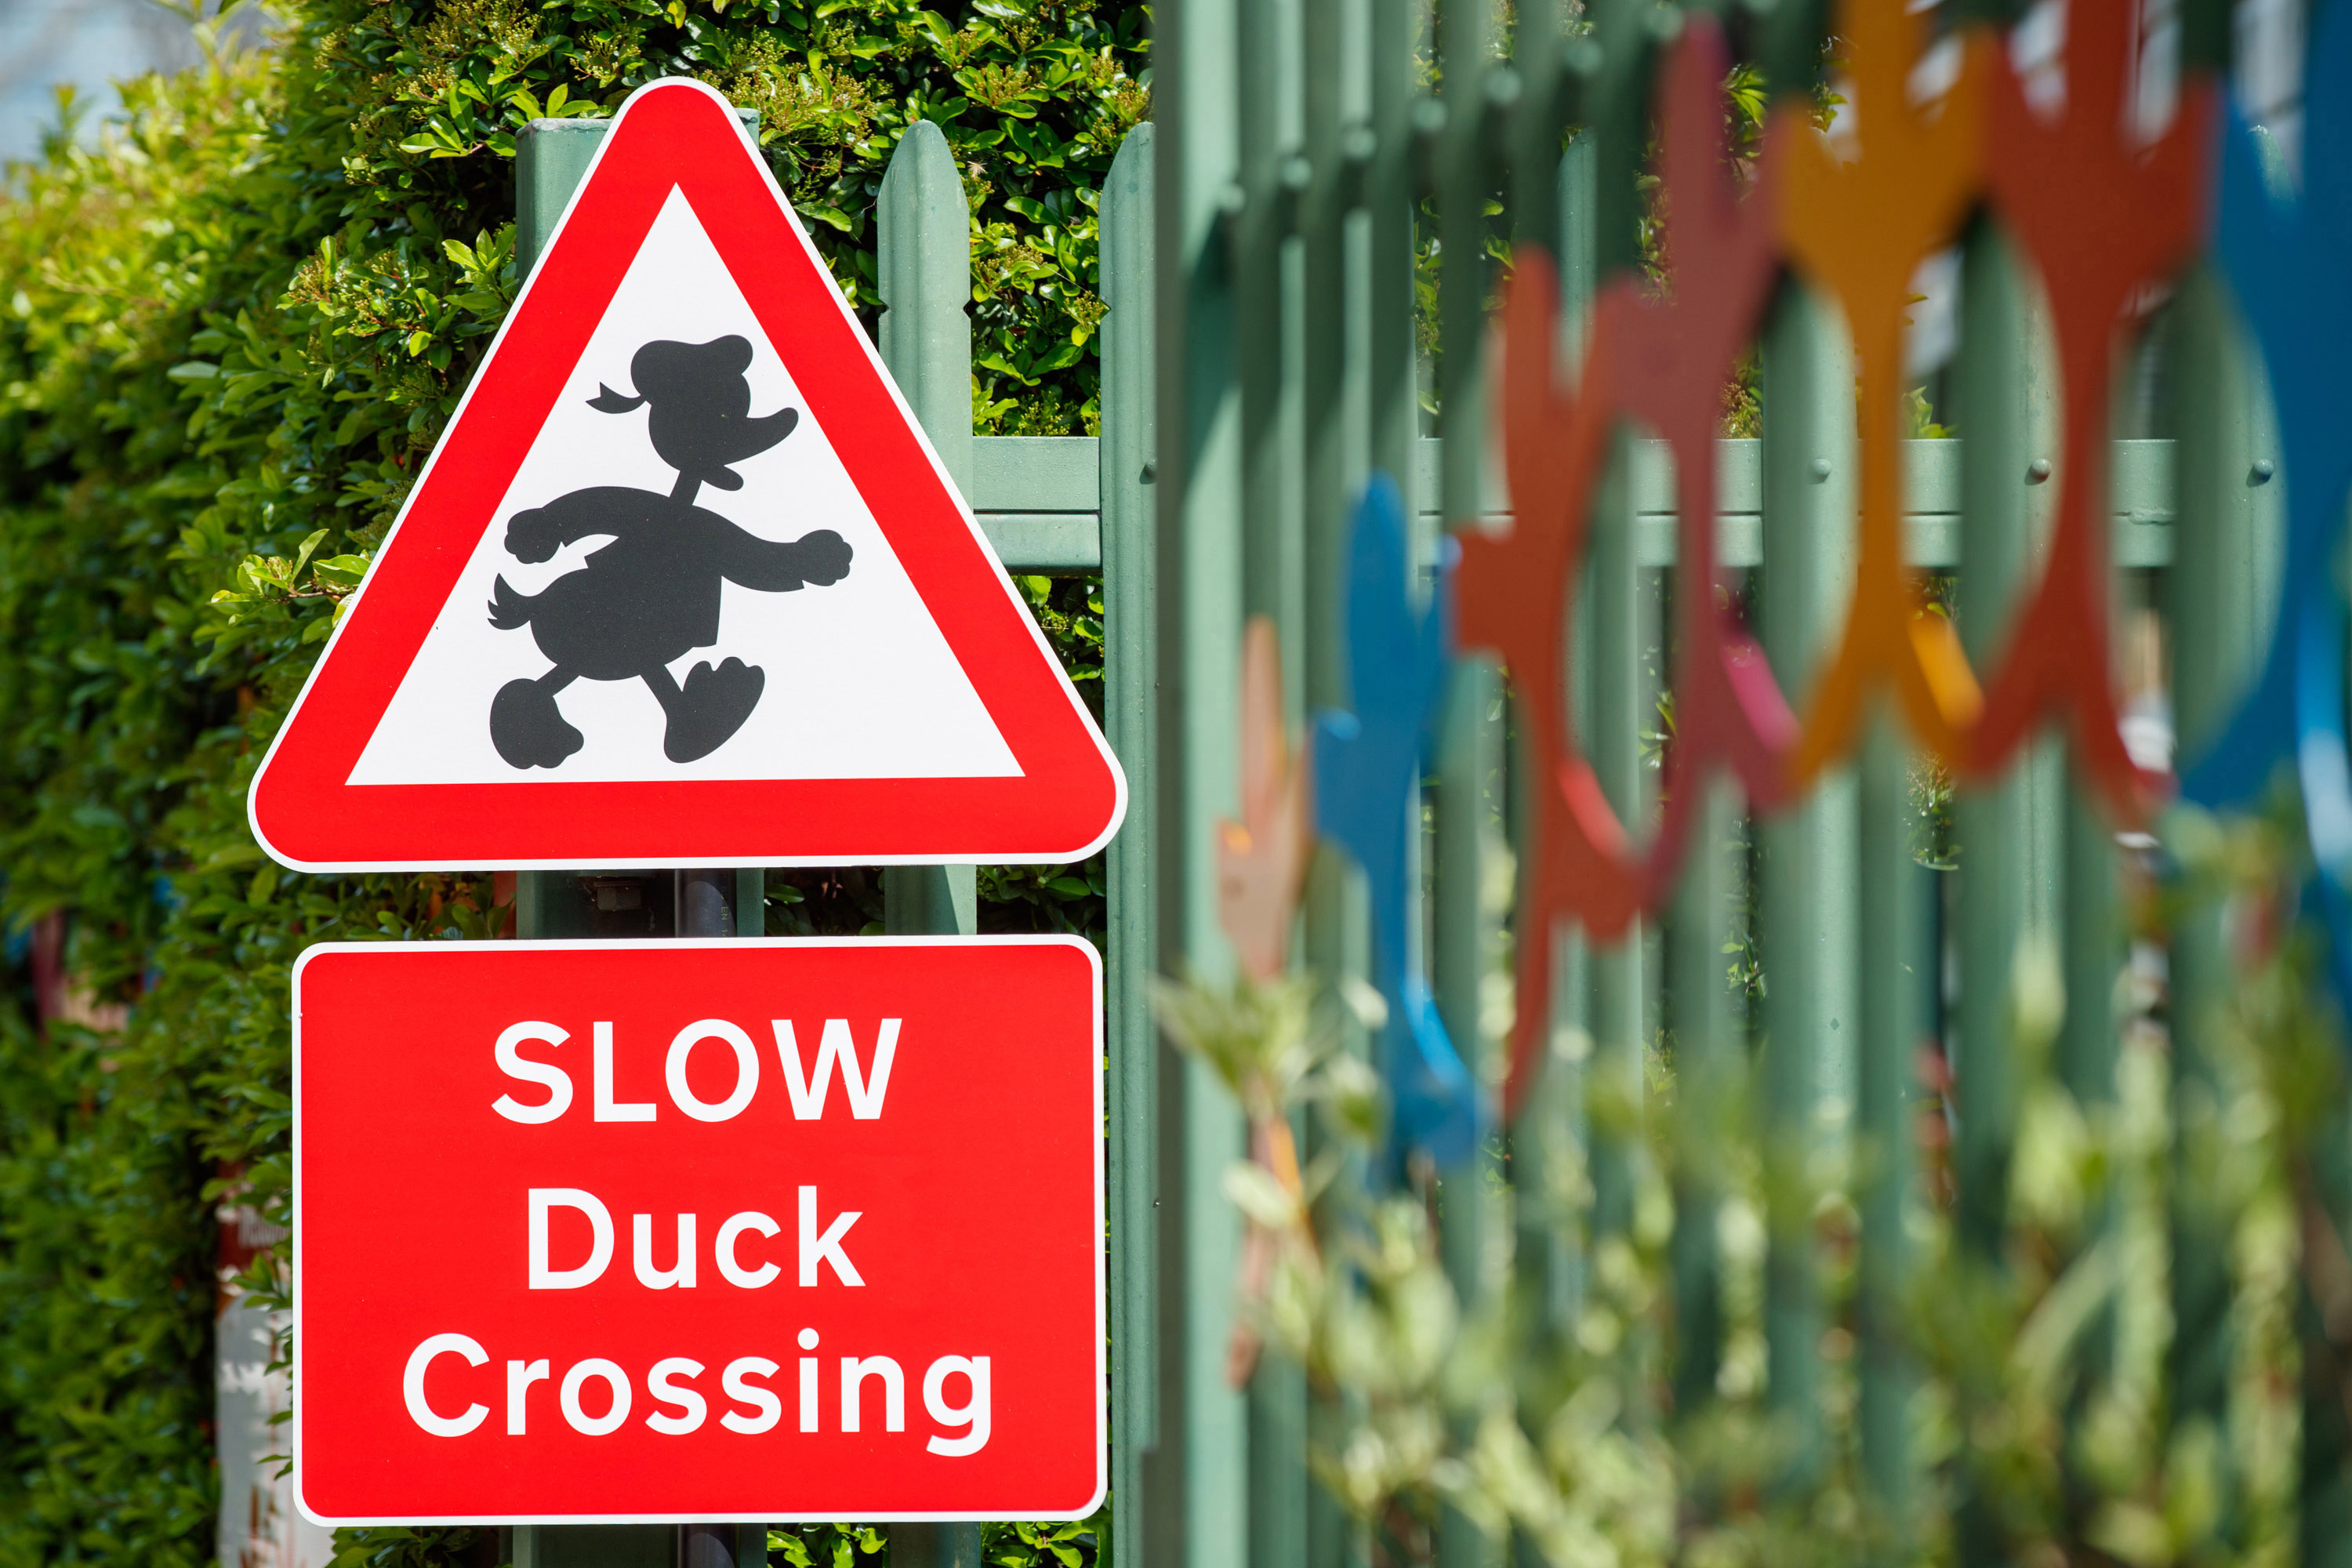 Mickey Mouse added to road signs in effort to keep children